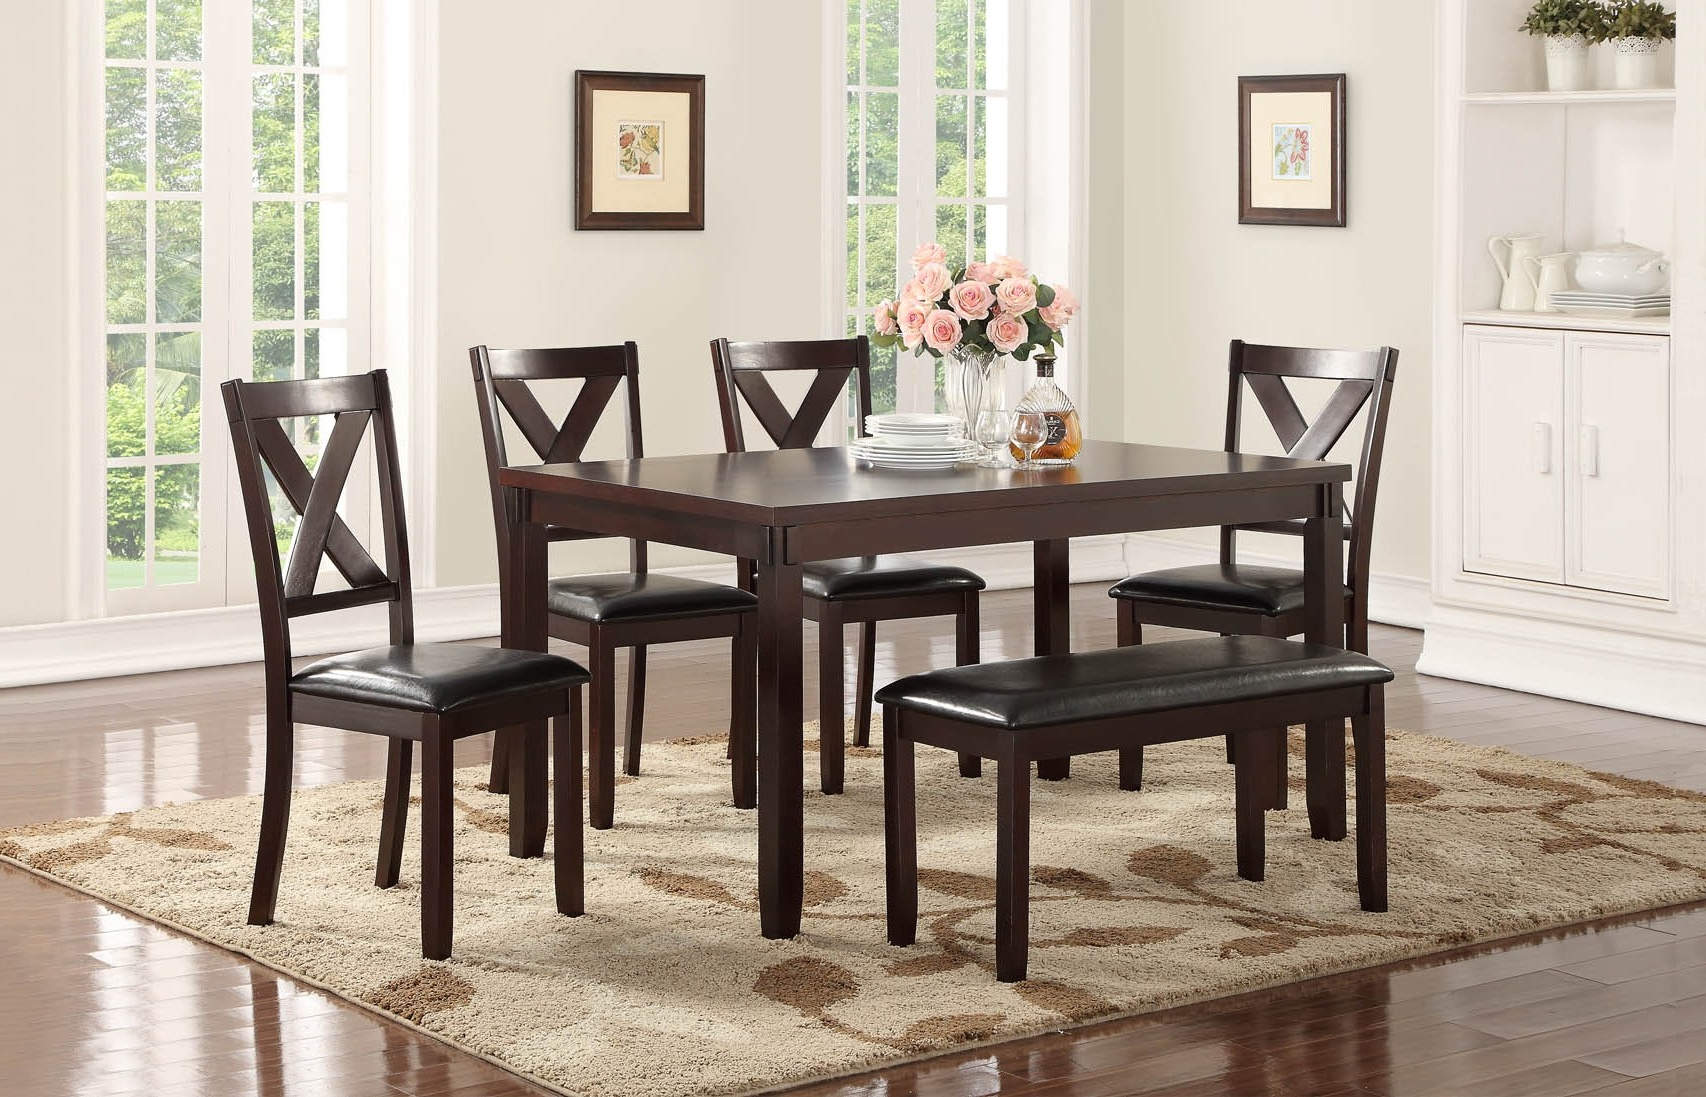 Penelope Collection 6 Pc Dining Set With Bench (View 8 of 25)